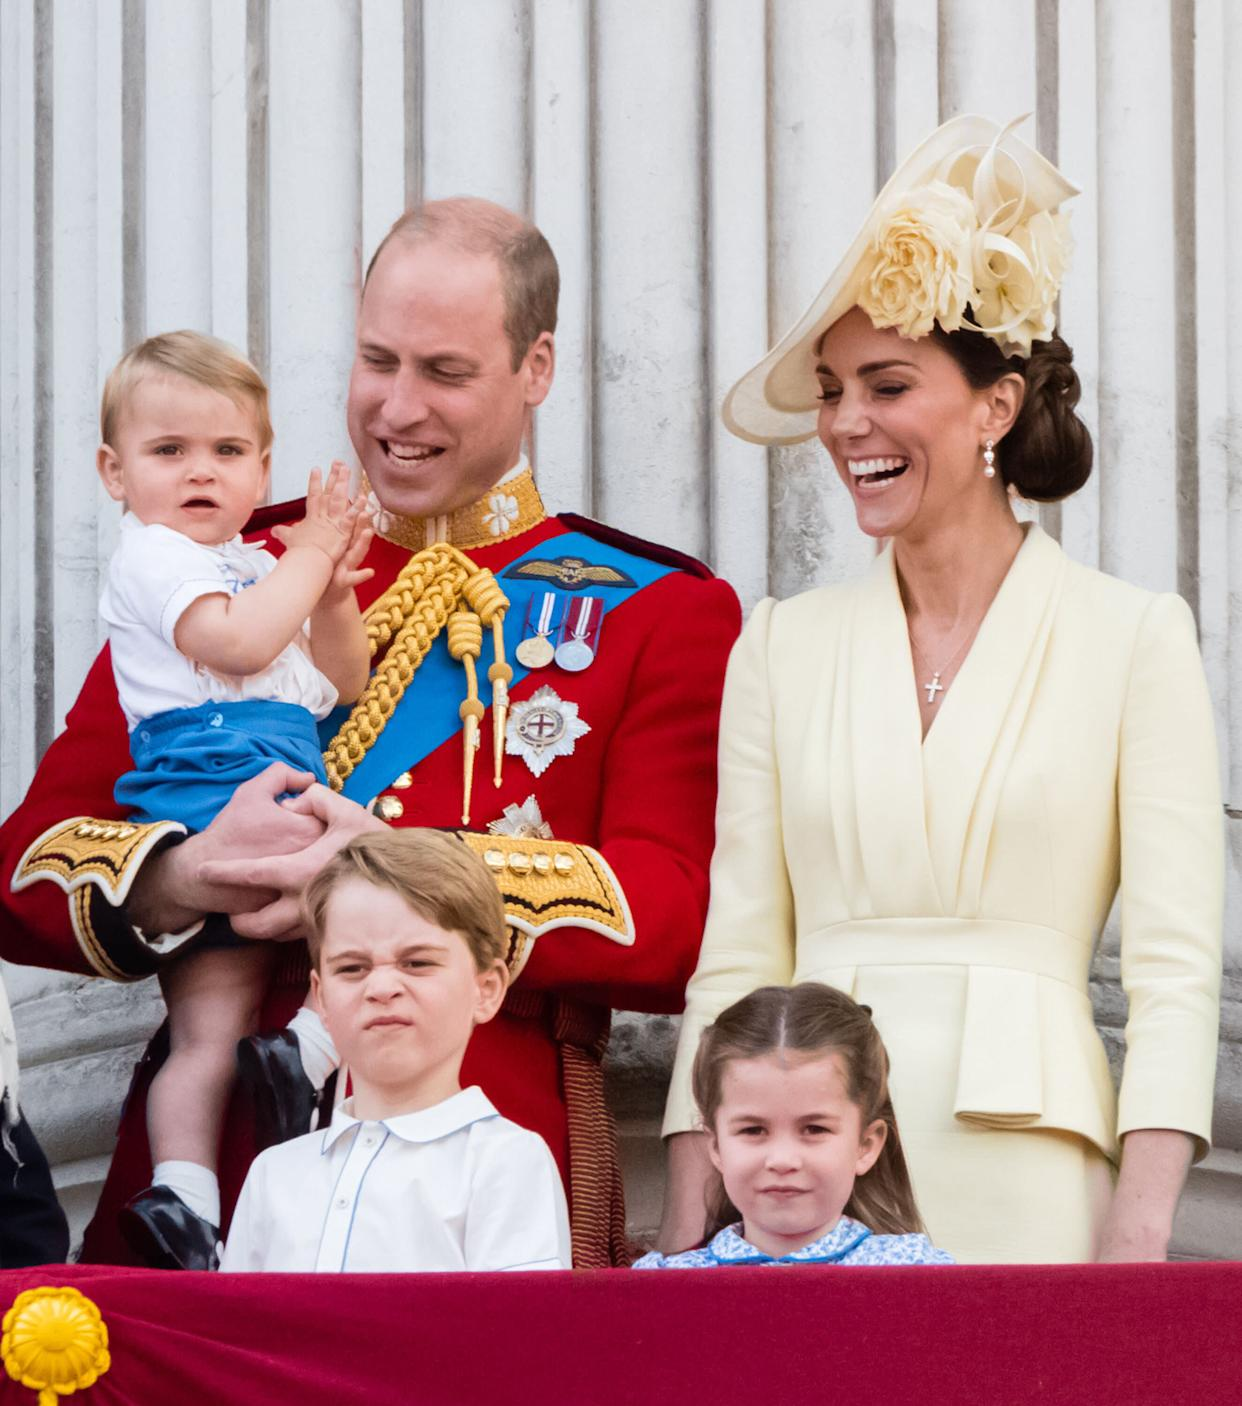 Prince George watches Trooping the Colour in June with his brother, Prince Louis, sister Princess Charlotte and their parents. (Photo: Samir Hussein via Getty Images)